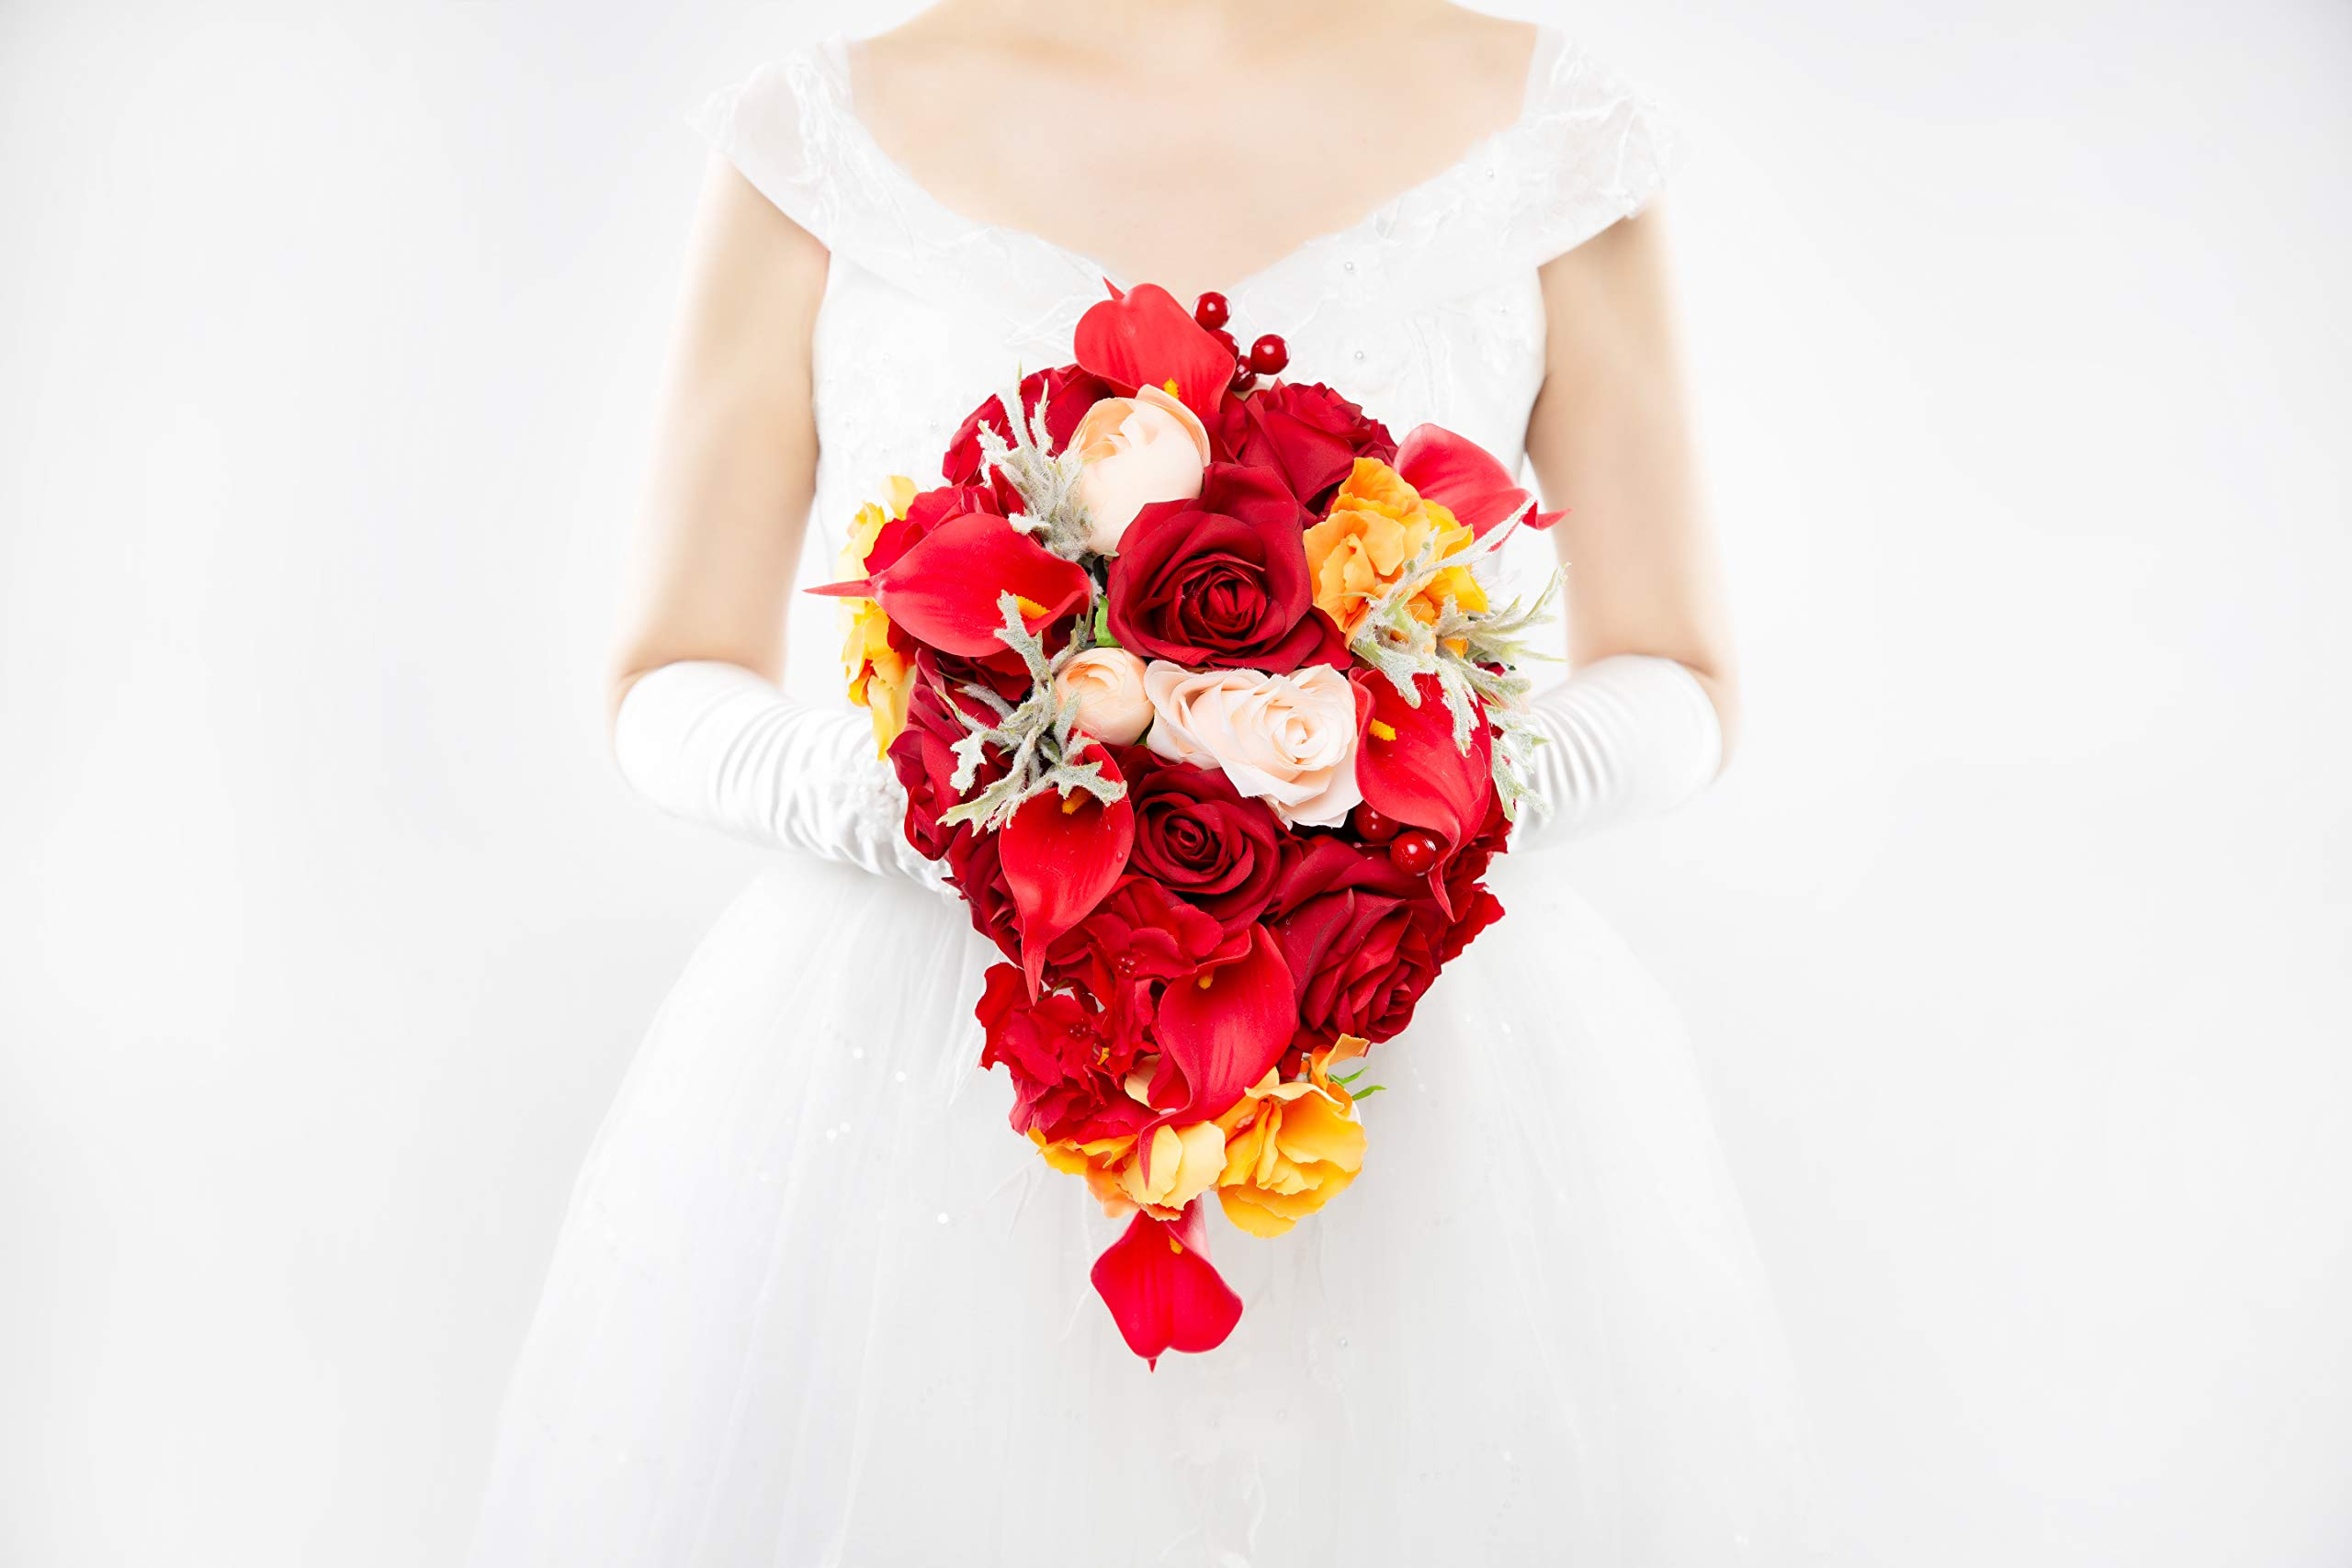 Abbie Home Cascaded Red Rose Bridal Bouquets - Pink Peony Calla Lily Wedding Flowers in Large Size (A Cascading Bouquet) by Abbie Home